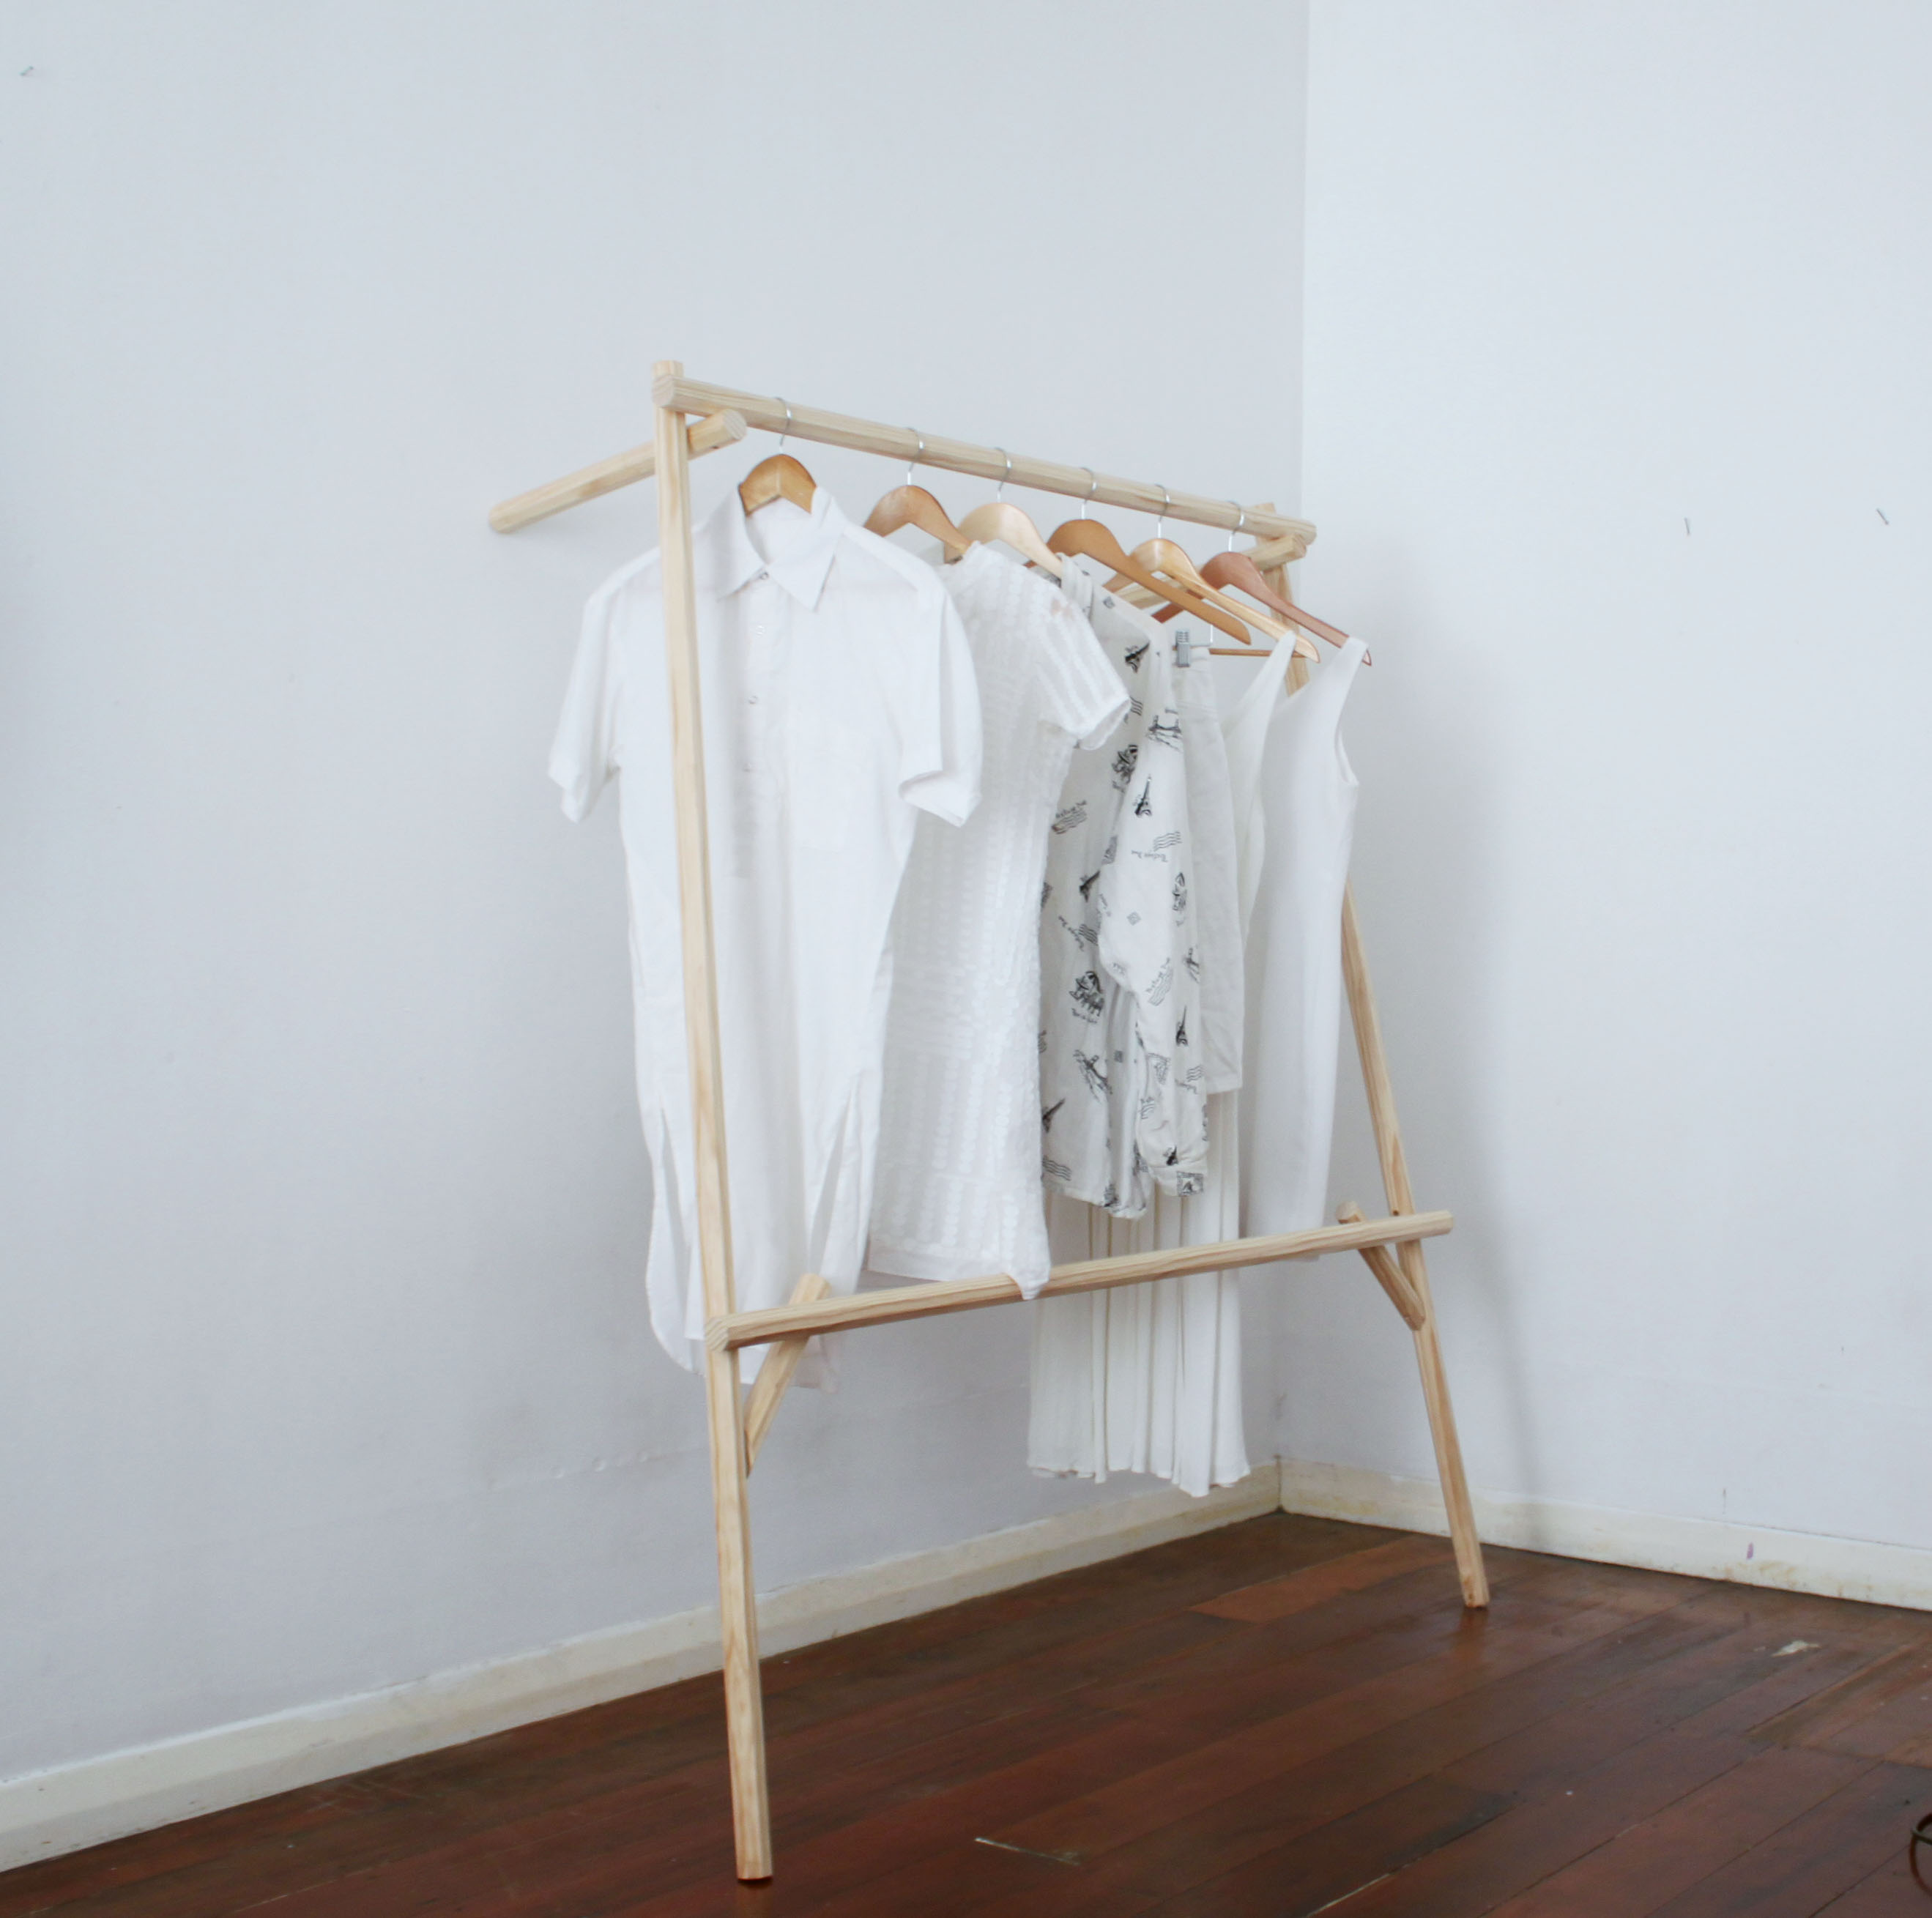 Hanging Rack for Aria